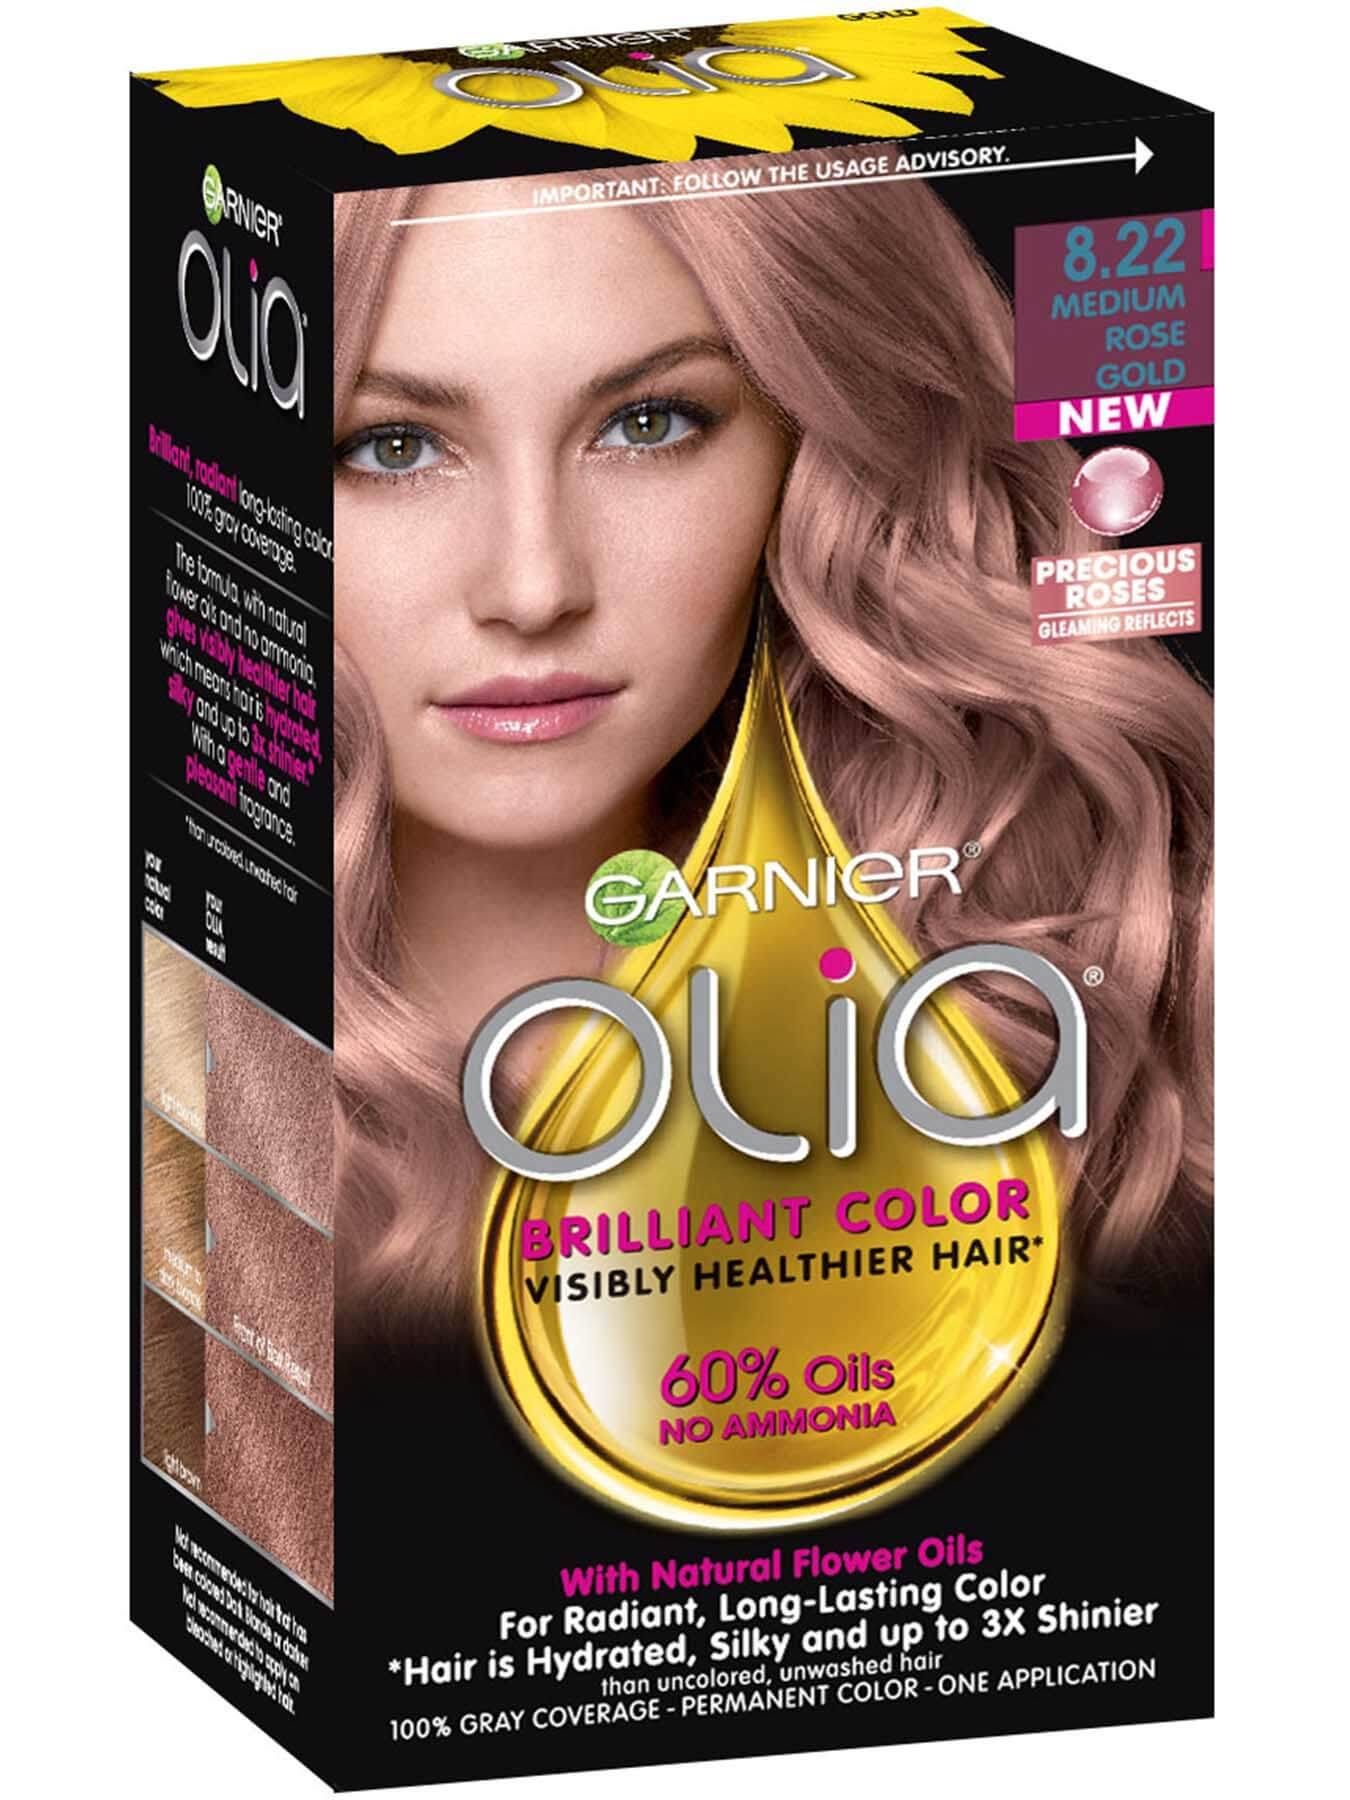 Olia Medium Rose Gold Hair Color Ammonia Free Hair Dye Garnier